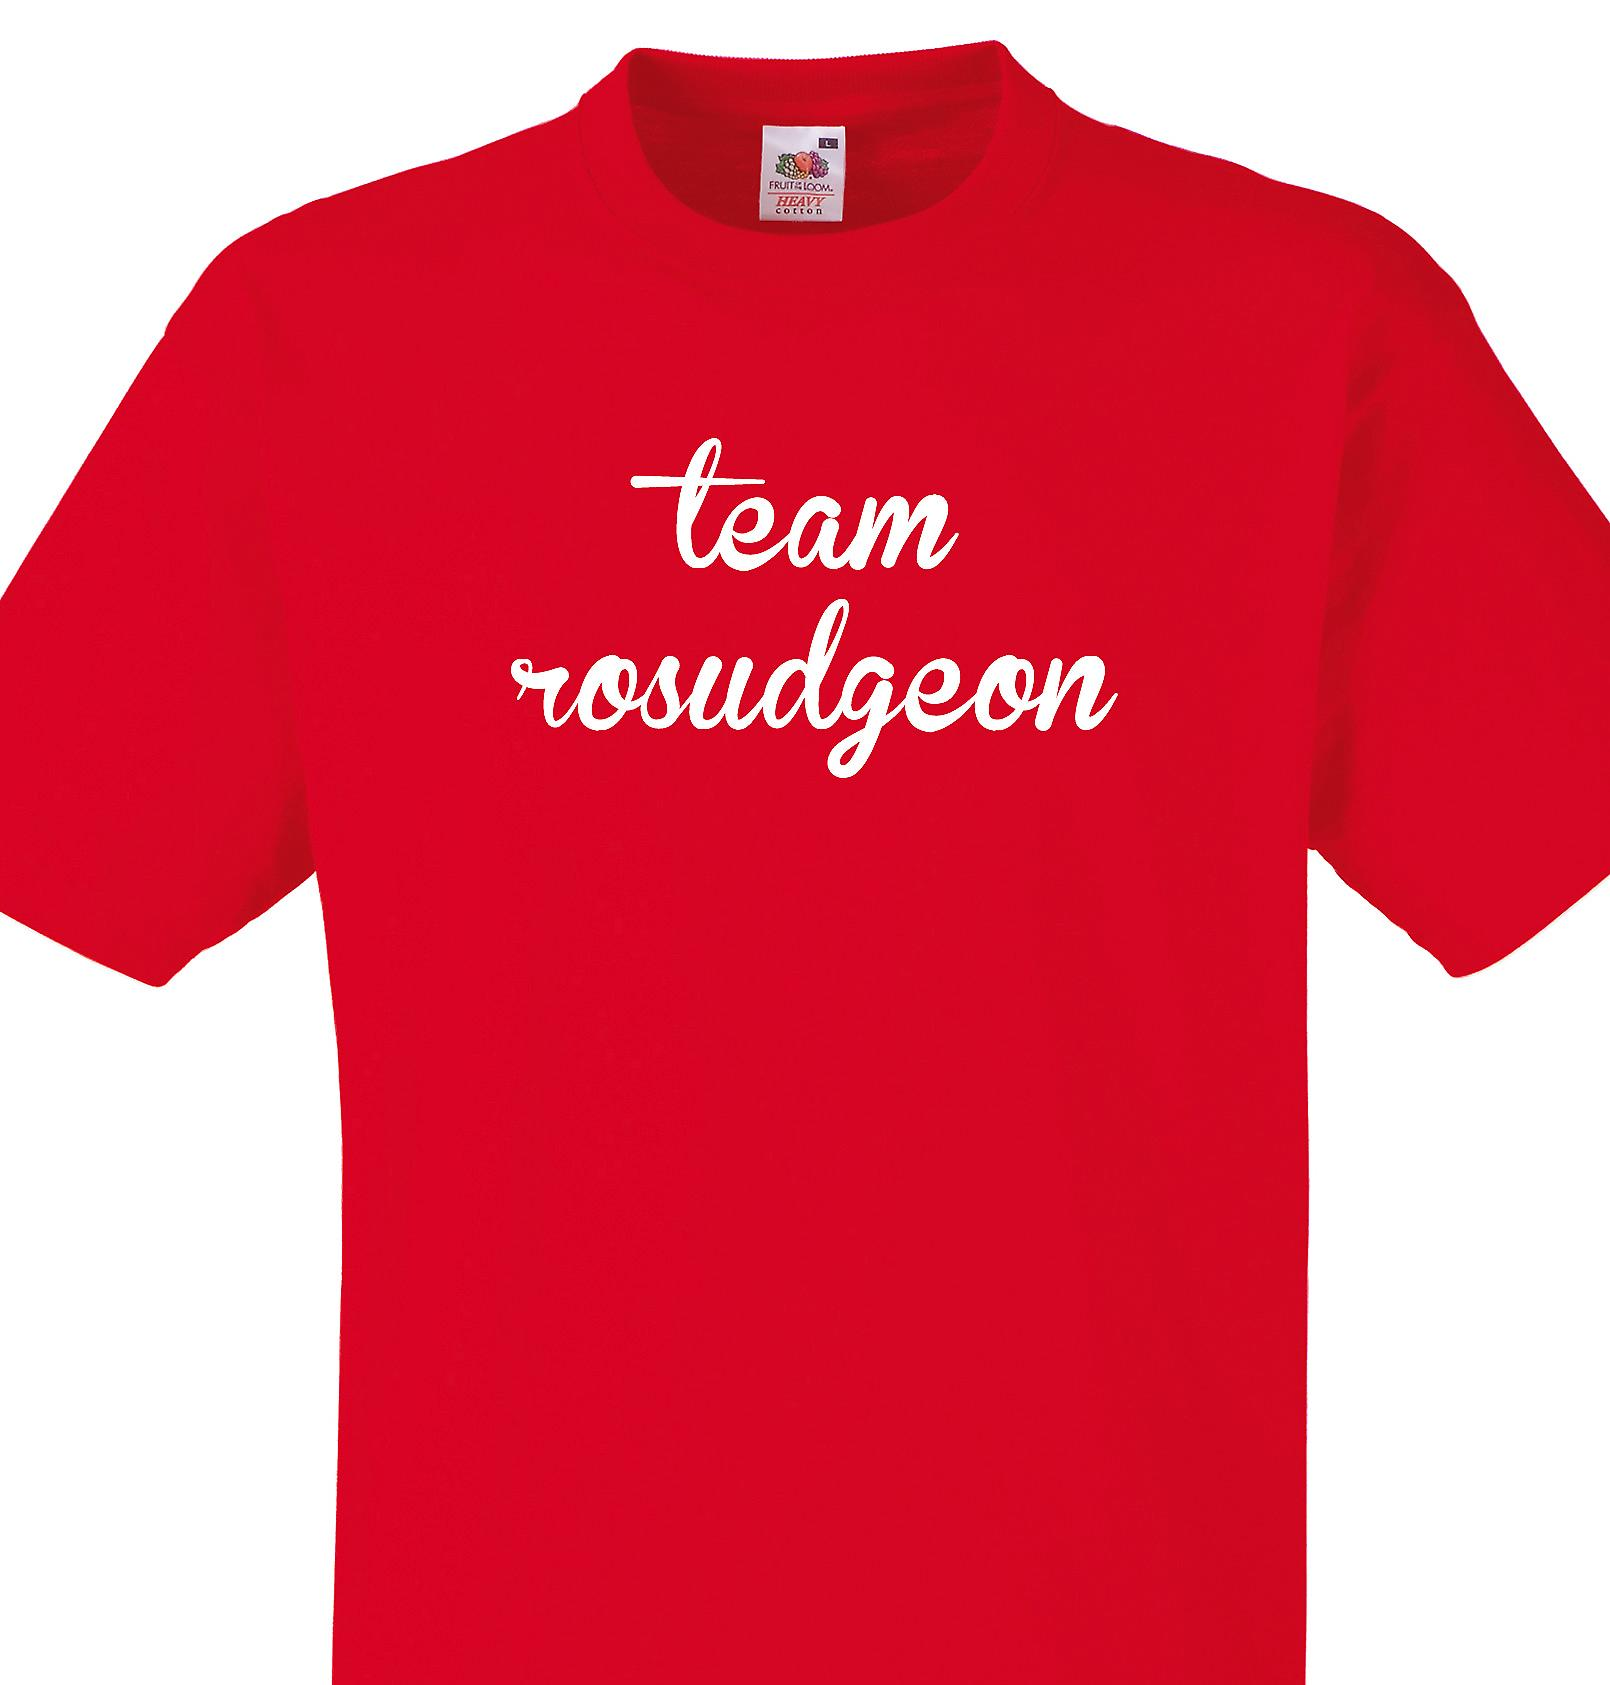 Team Rosudgeon Red T shirt